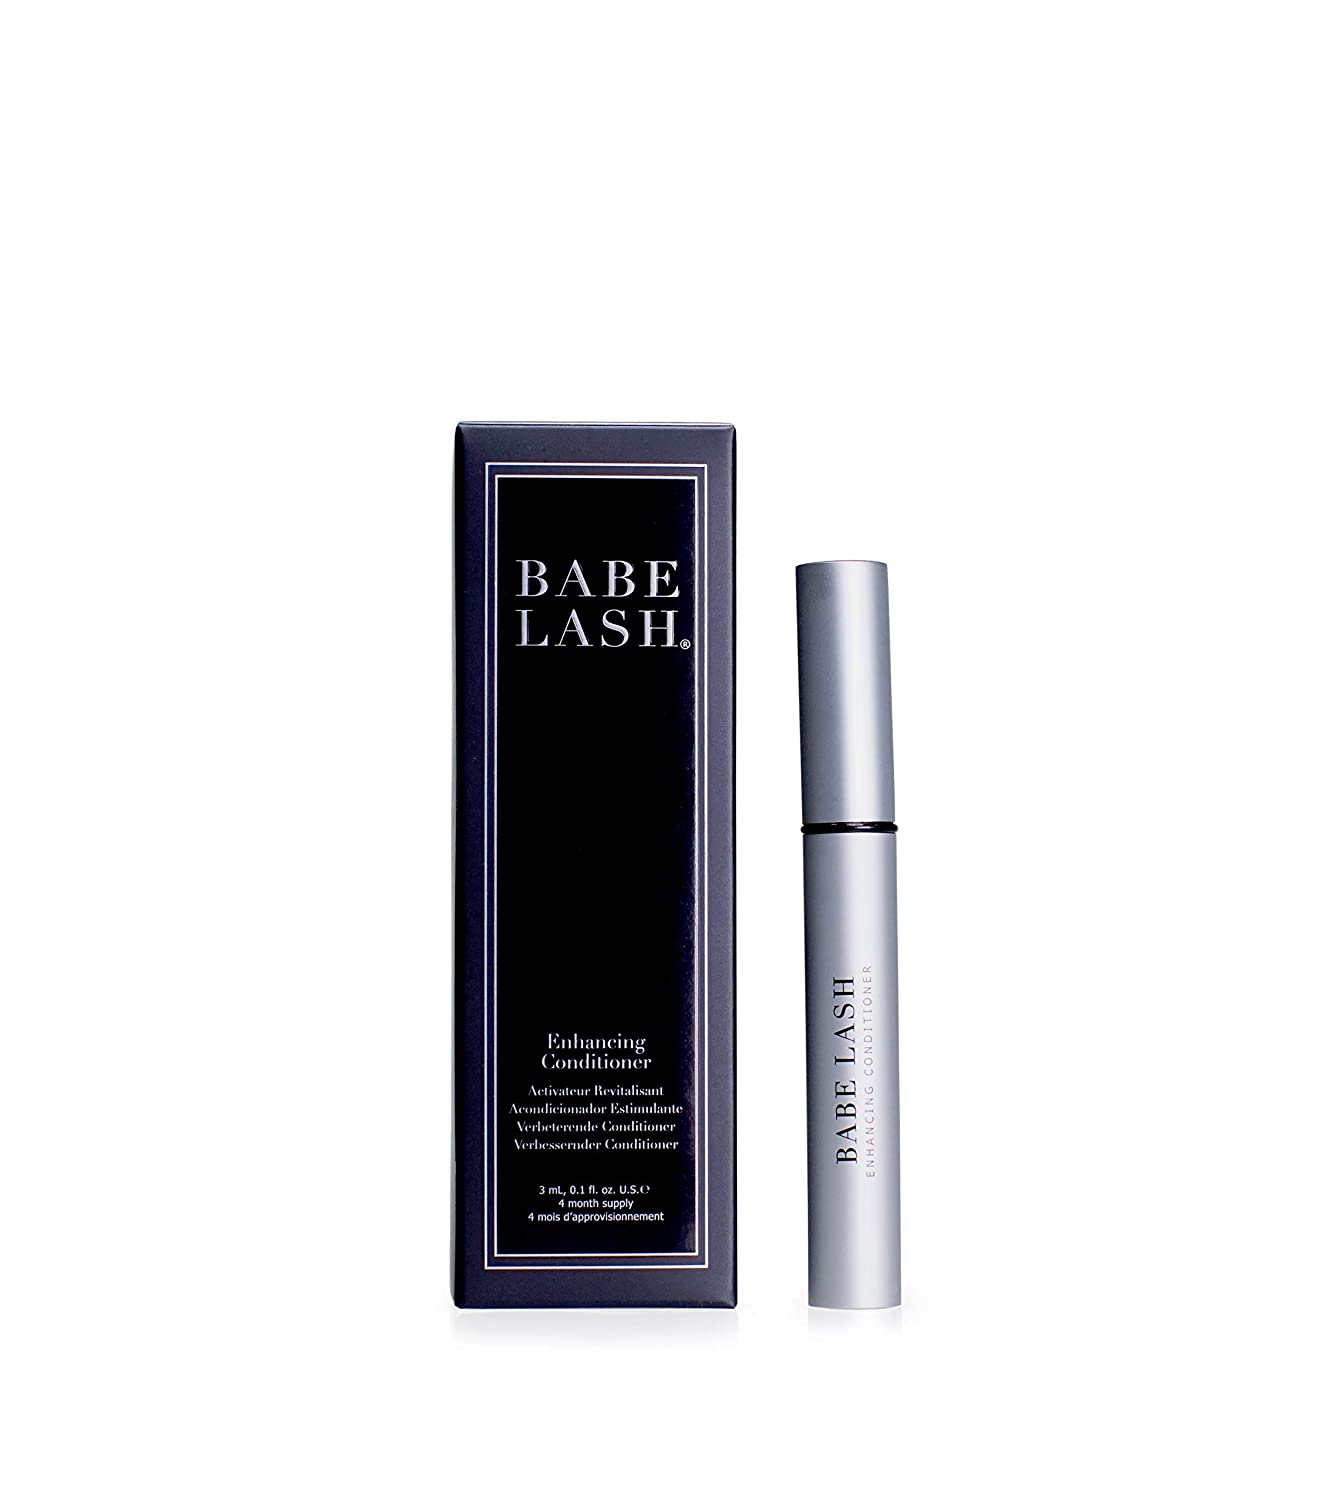 c94c5d0147f Babe Lash (3 mL) Enhancing Conditioner | Eyelash Enhancing Formula |  Companion to Eyelash Serum: Amazon.ca: Beauty